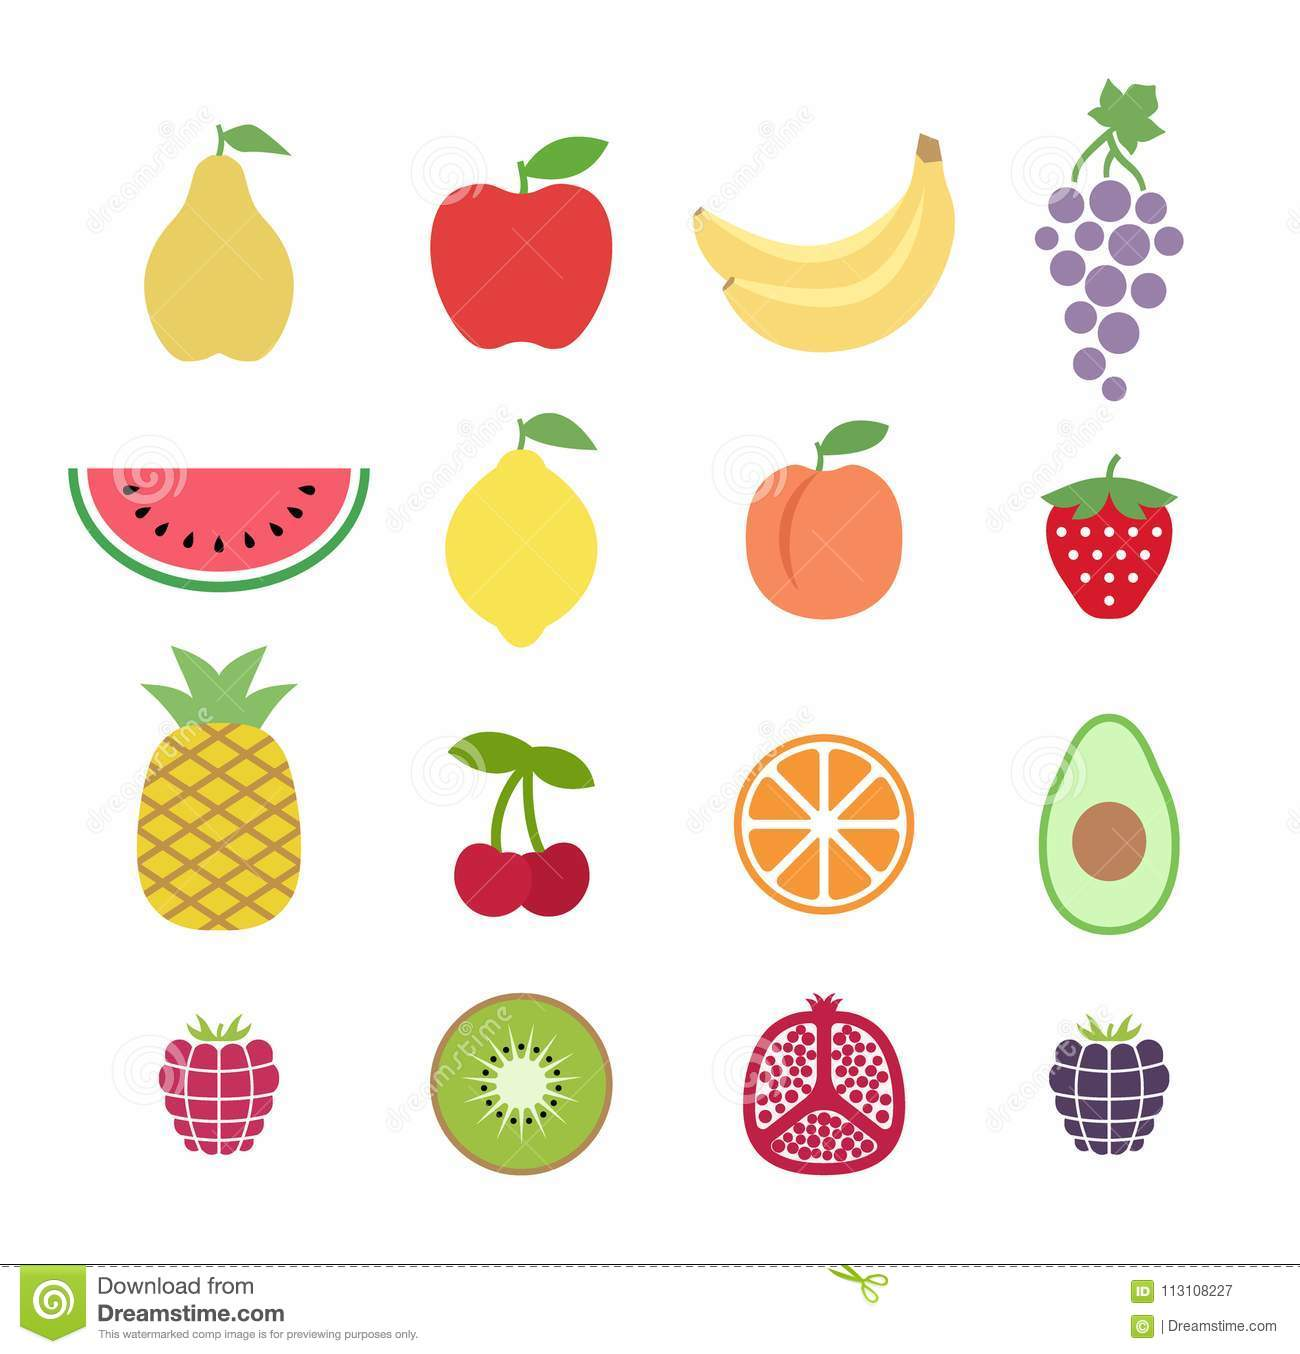 Set of colorful clipart fruits. Fruit icons set. Collection of clip art fruit icons.